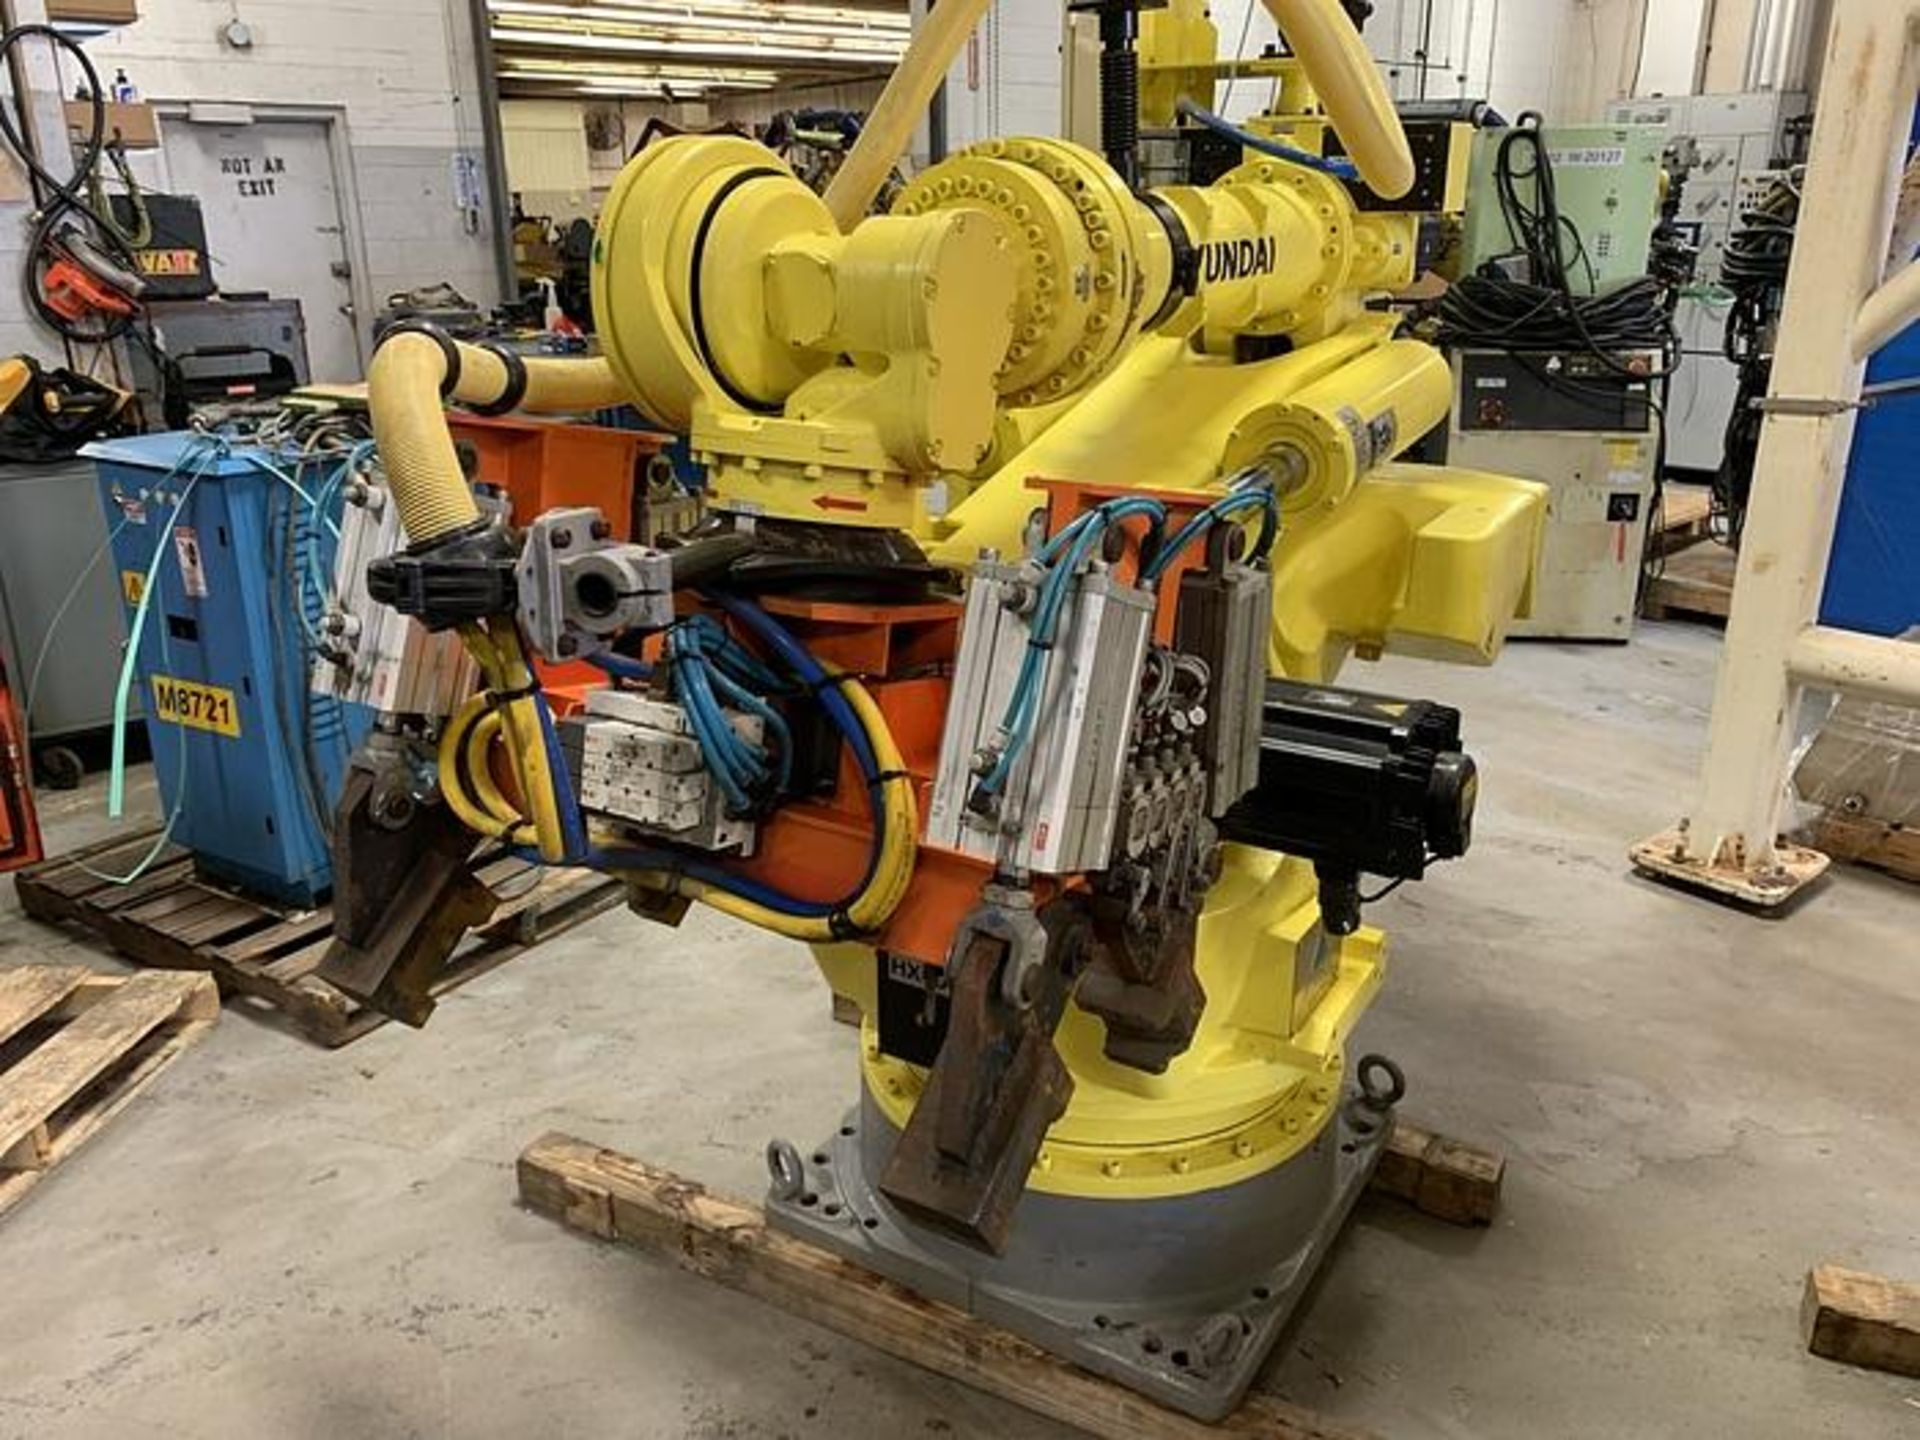 HYUNDIA MODEL HX400 400KG X 2573MM H REACH WITH Hi5-N80U CONTROLLER 6 AXIS CNC ROBOT, YEAR 2012 - Image 3 of 19